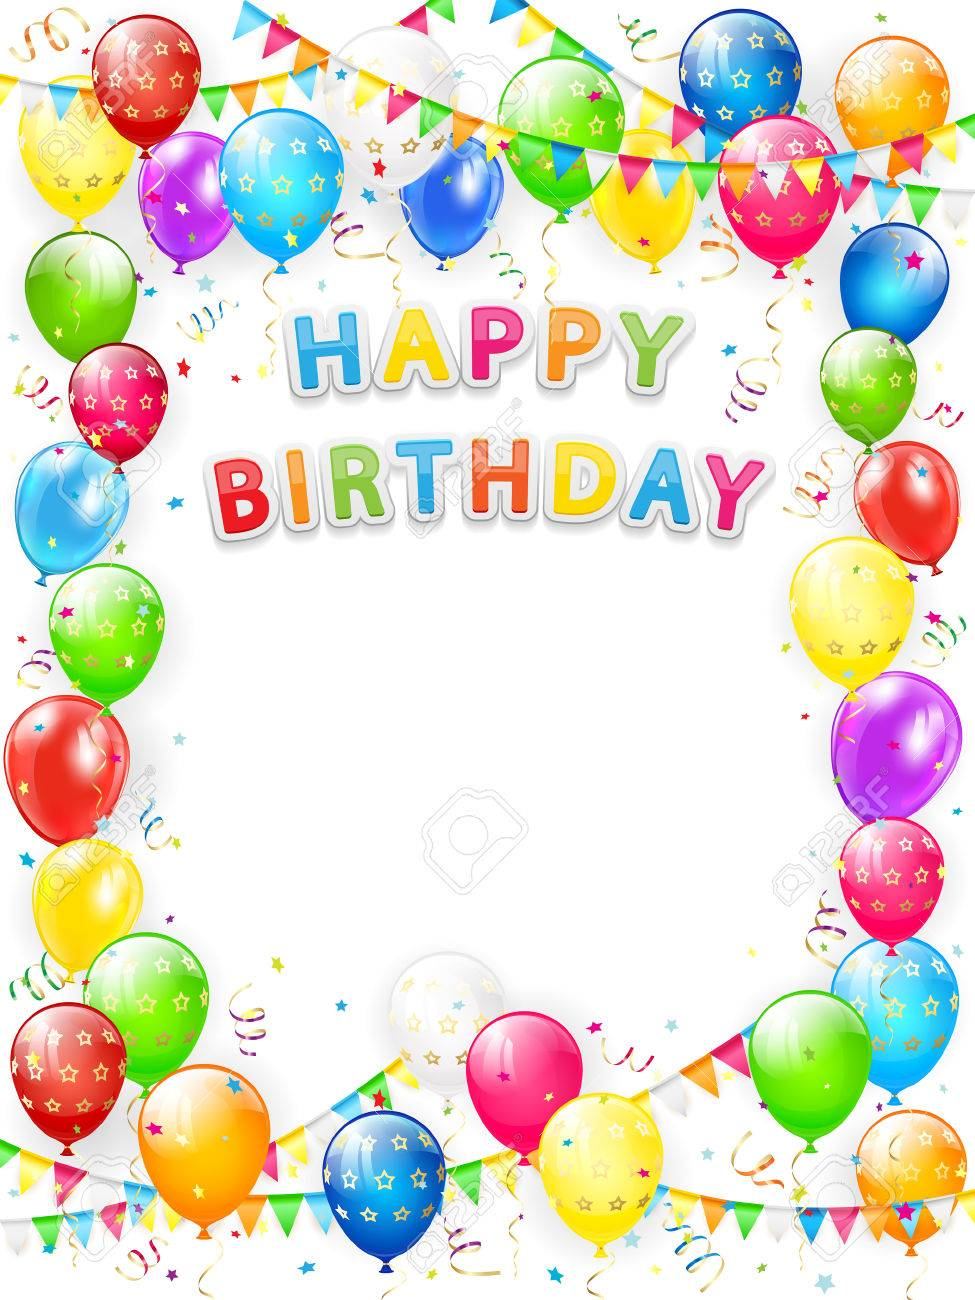 happy birthday picture frame images ; 77887833-lettering-happy-birthday-frame-of-flying-colorful-balloons-multicolored-pennants-streamers-and-confe